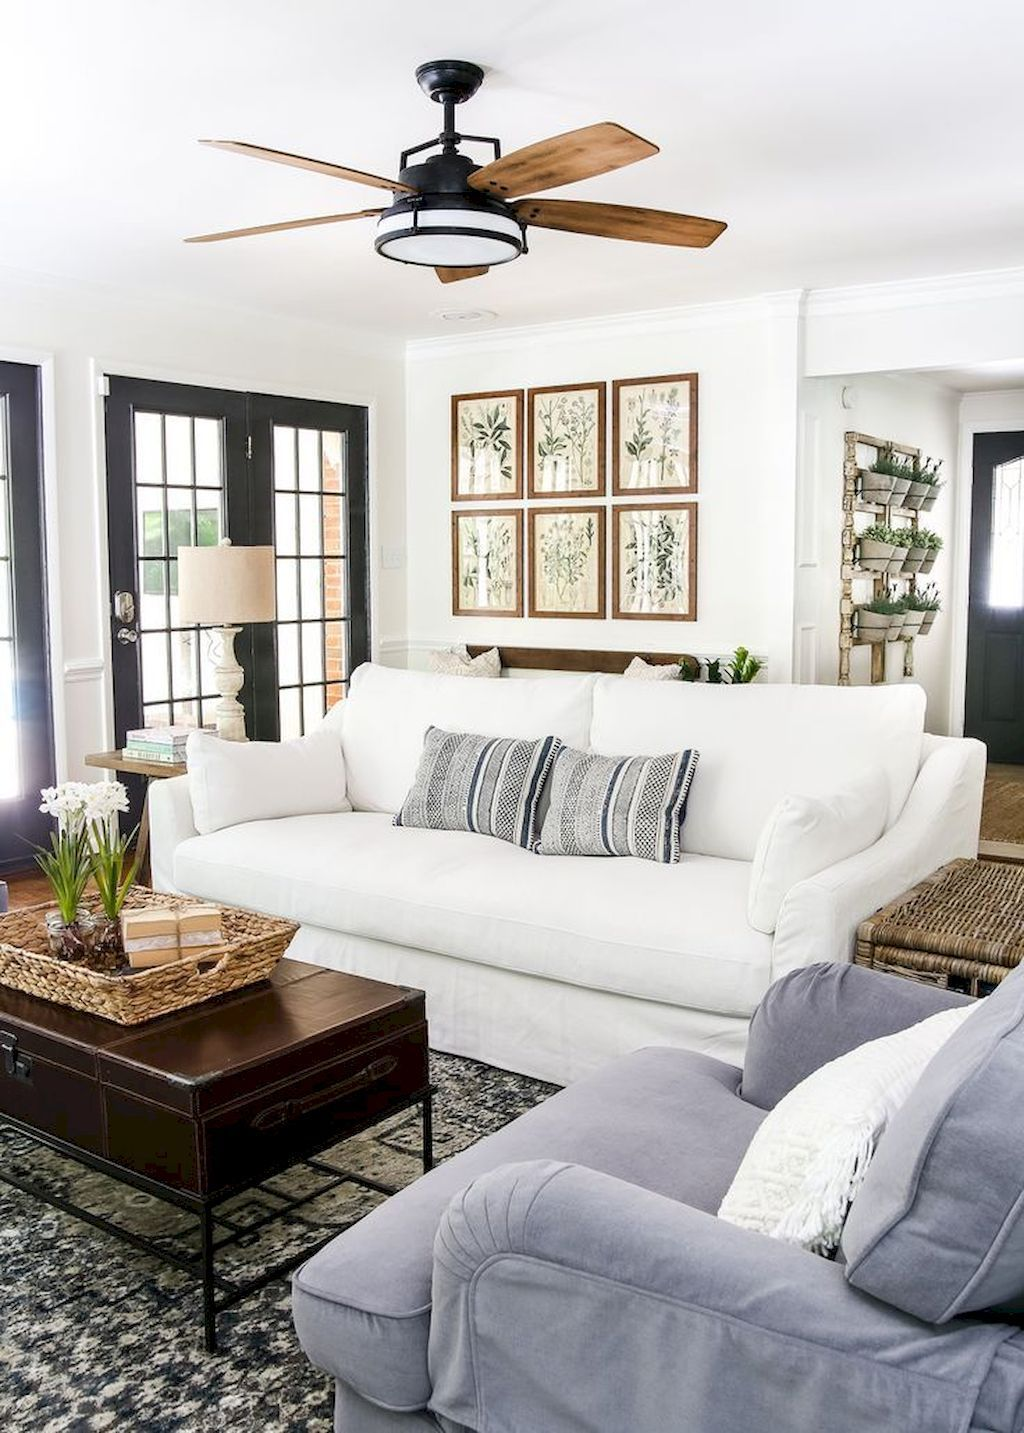 Stunning french country living room decor ideas (53 | French country ...